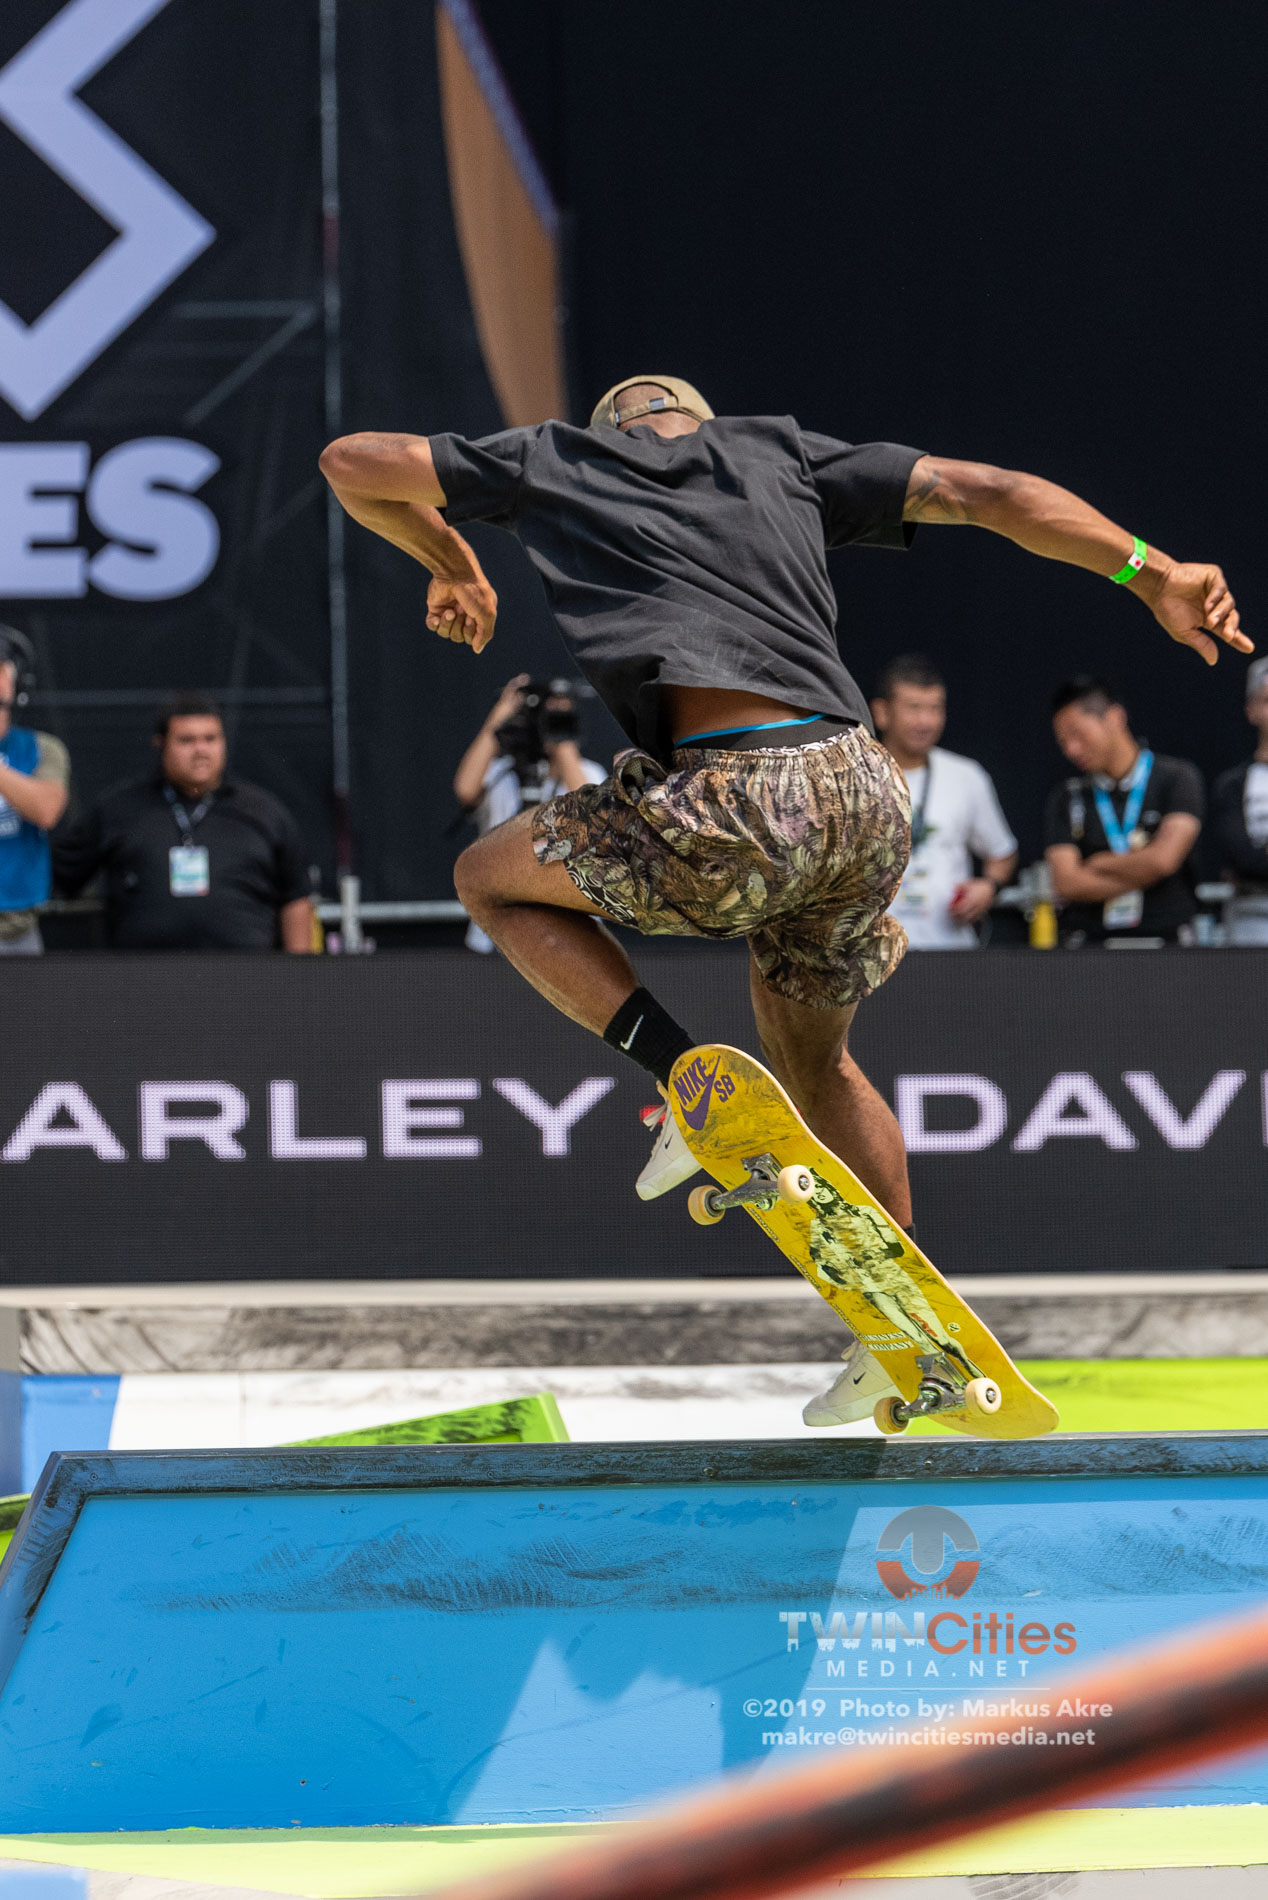 2019-X-Games-Day-4-Skateboard-Street-Best-Trick-11